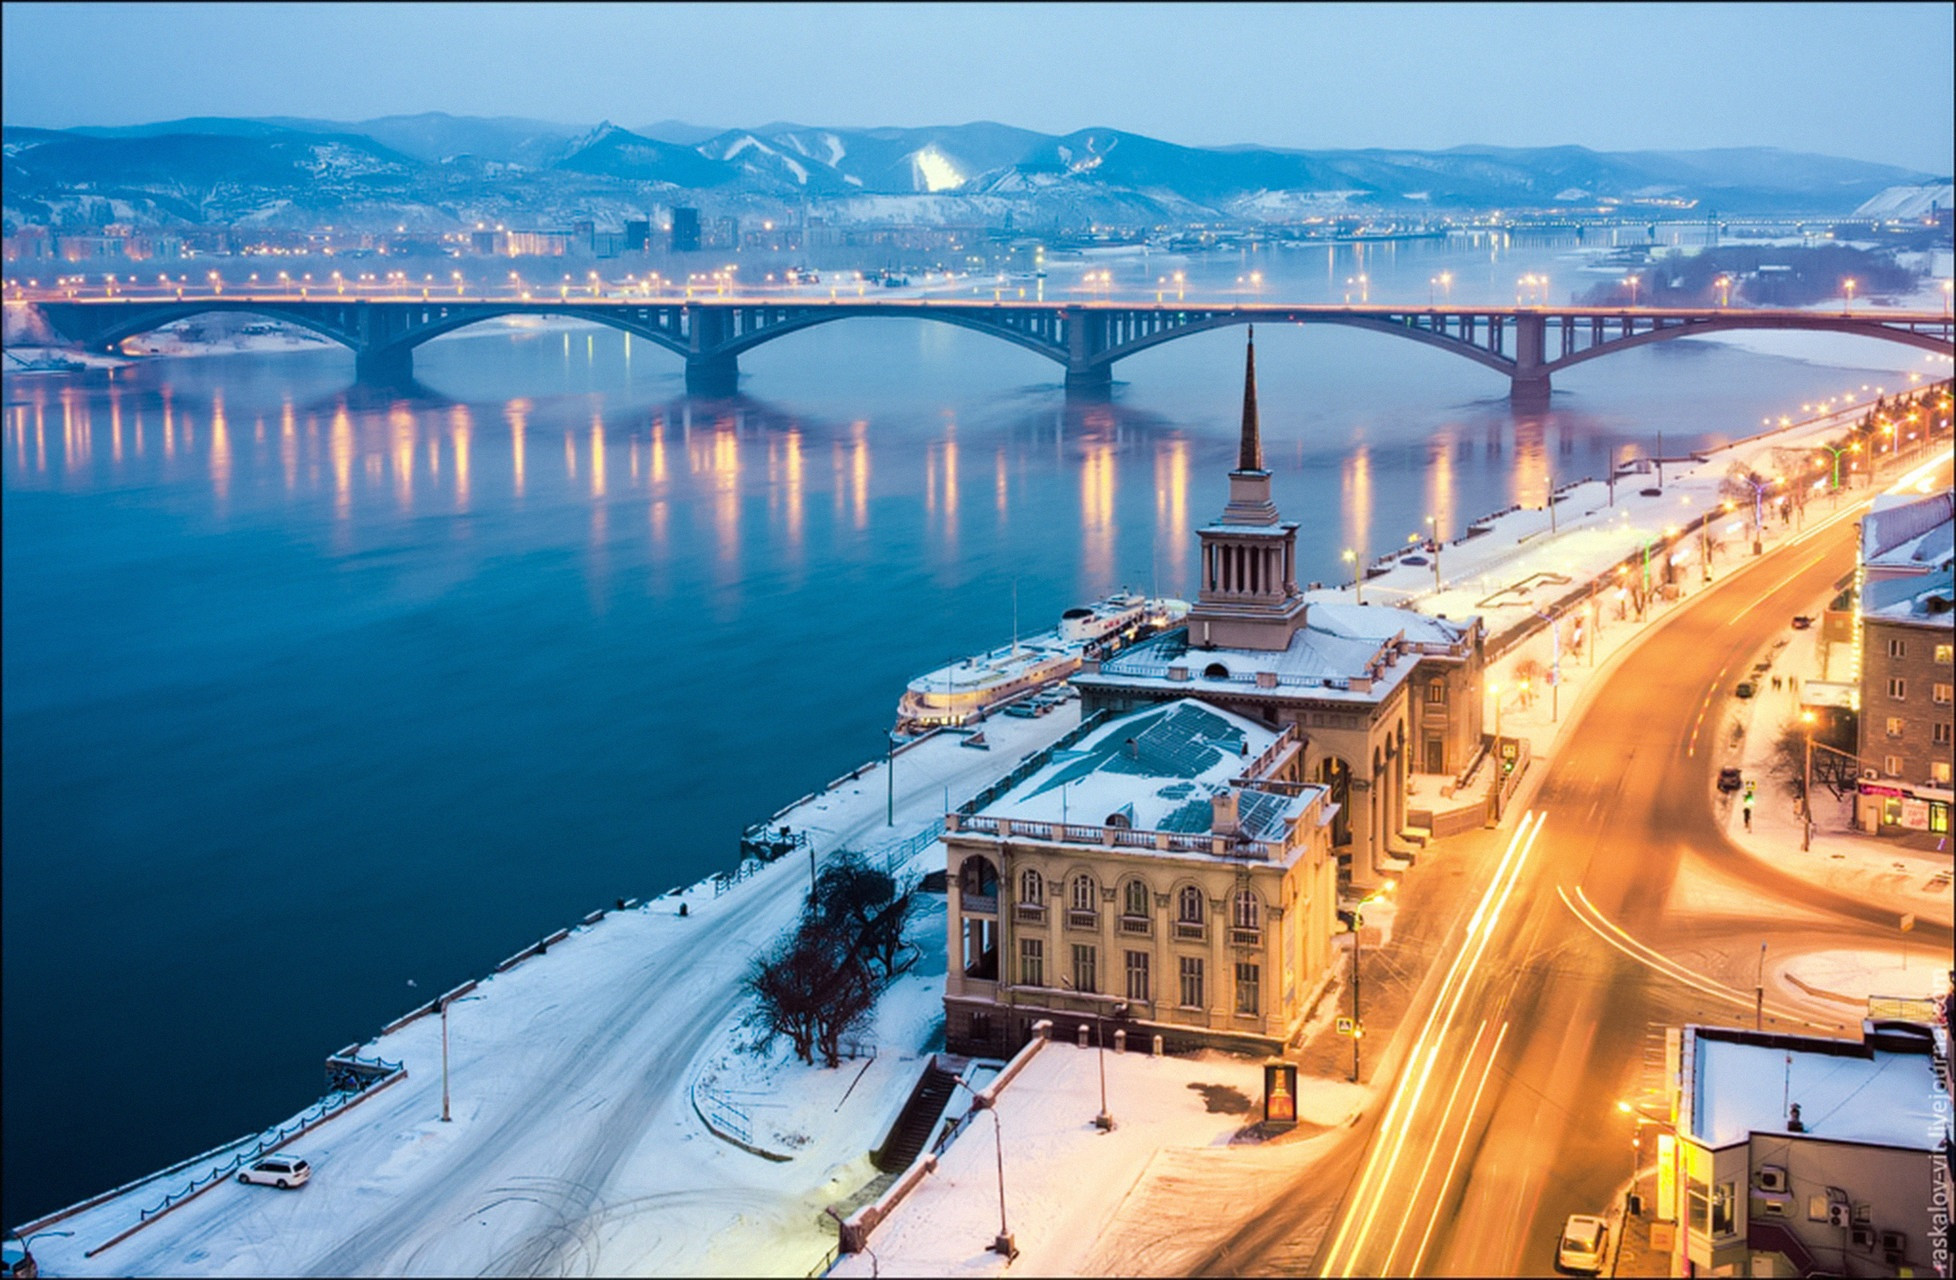 The 2019 Winter Universiade is due to be held in Krasnoyarsk from March 2 to 12 ©FISU